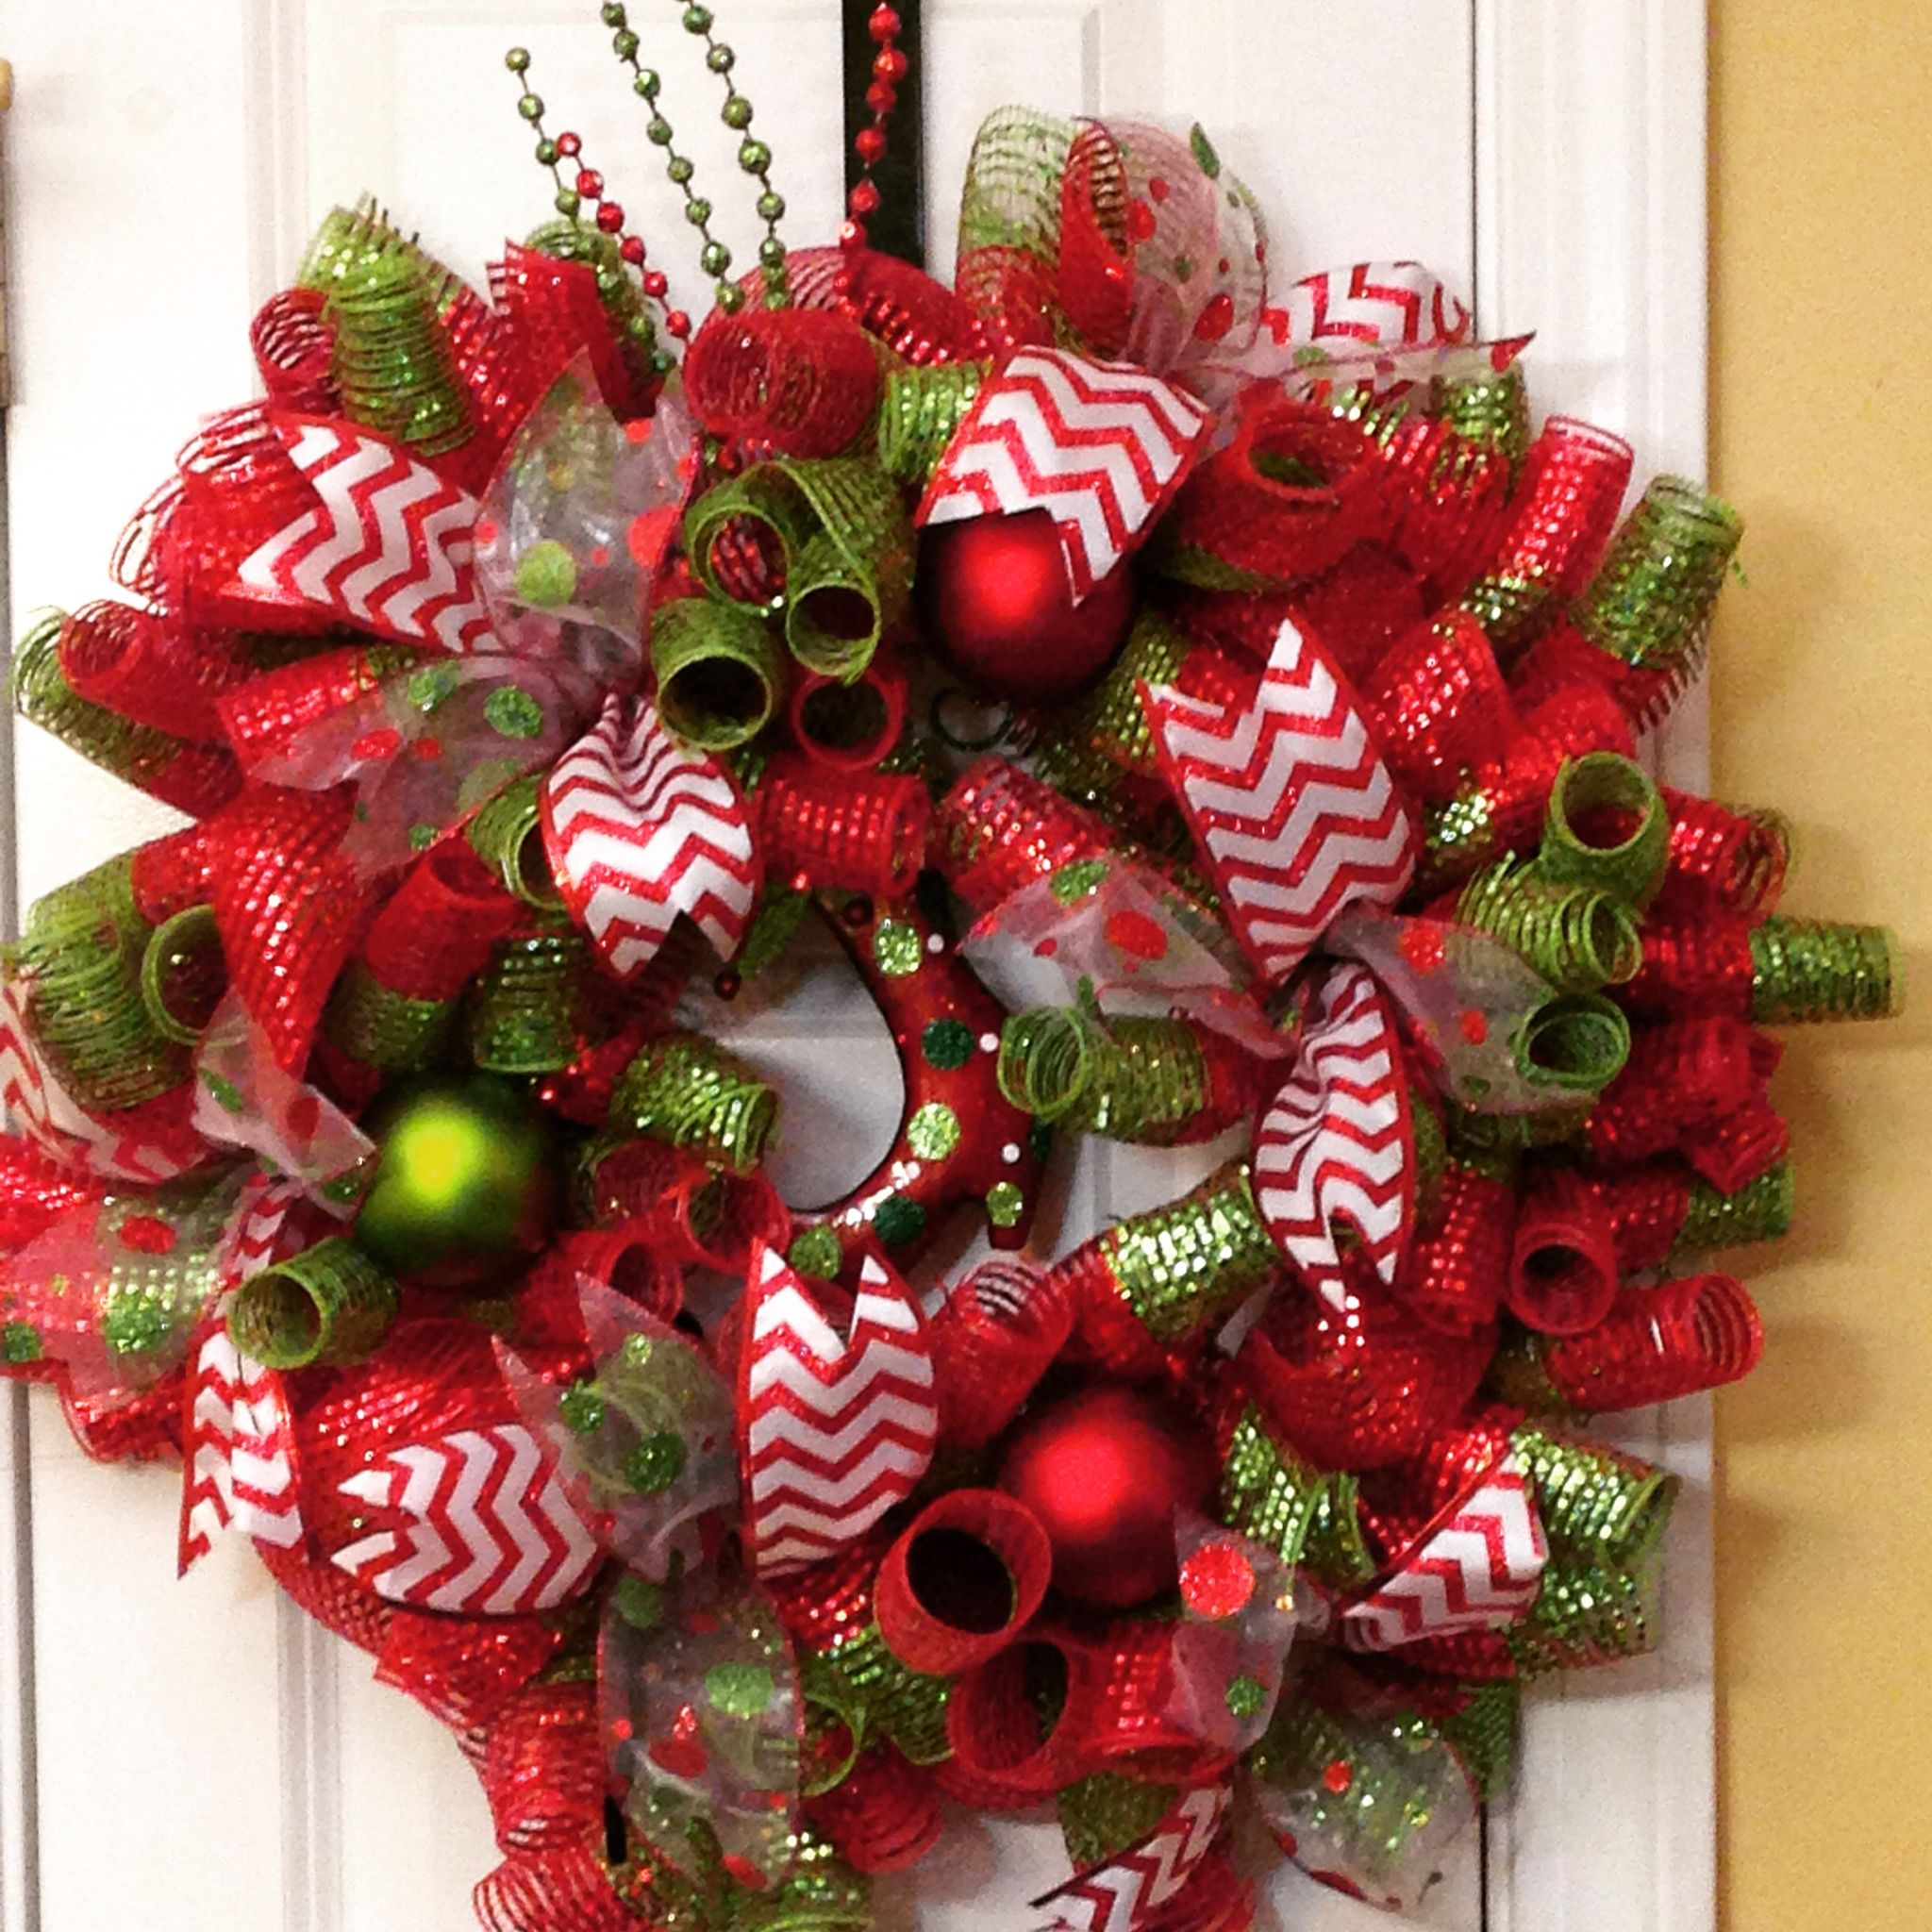 Geo mesh wreath form - Christmas Geo Mesh Wreath By Kathy Merry Christmas